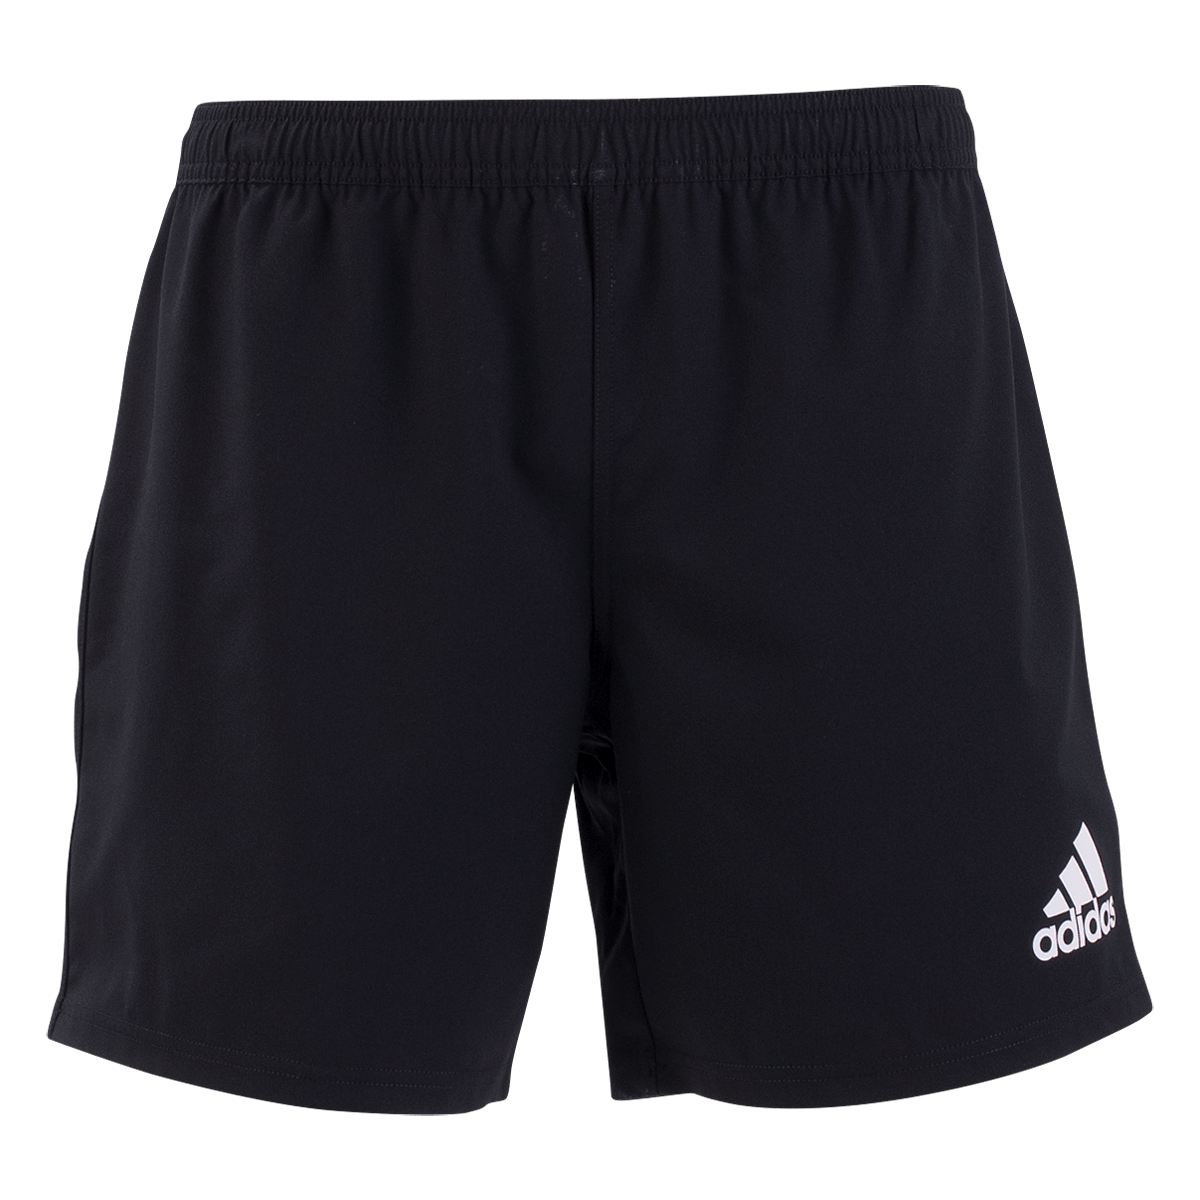 Front View of Adidas 19 Black/White Youth Rugby Shorts